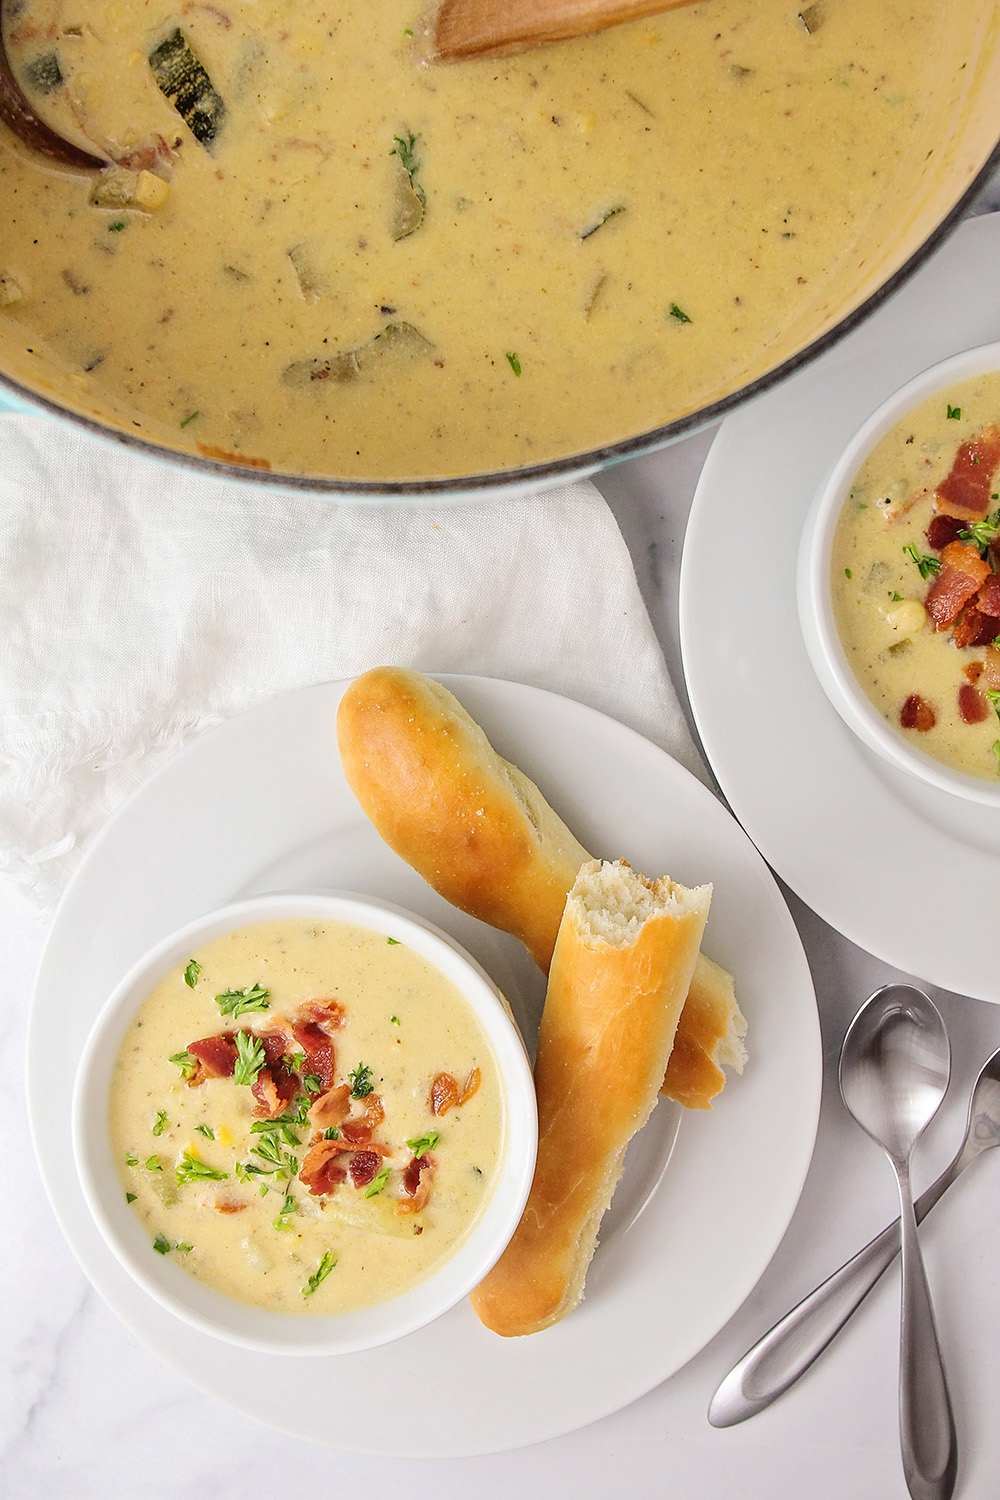 This delicious and savory zucchini corn chowder is the perfect way to enjoy those abundant summer vegetables!